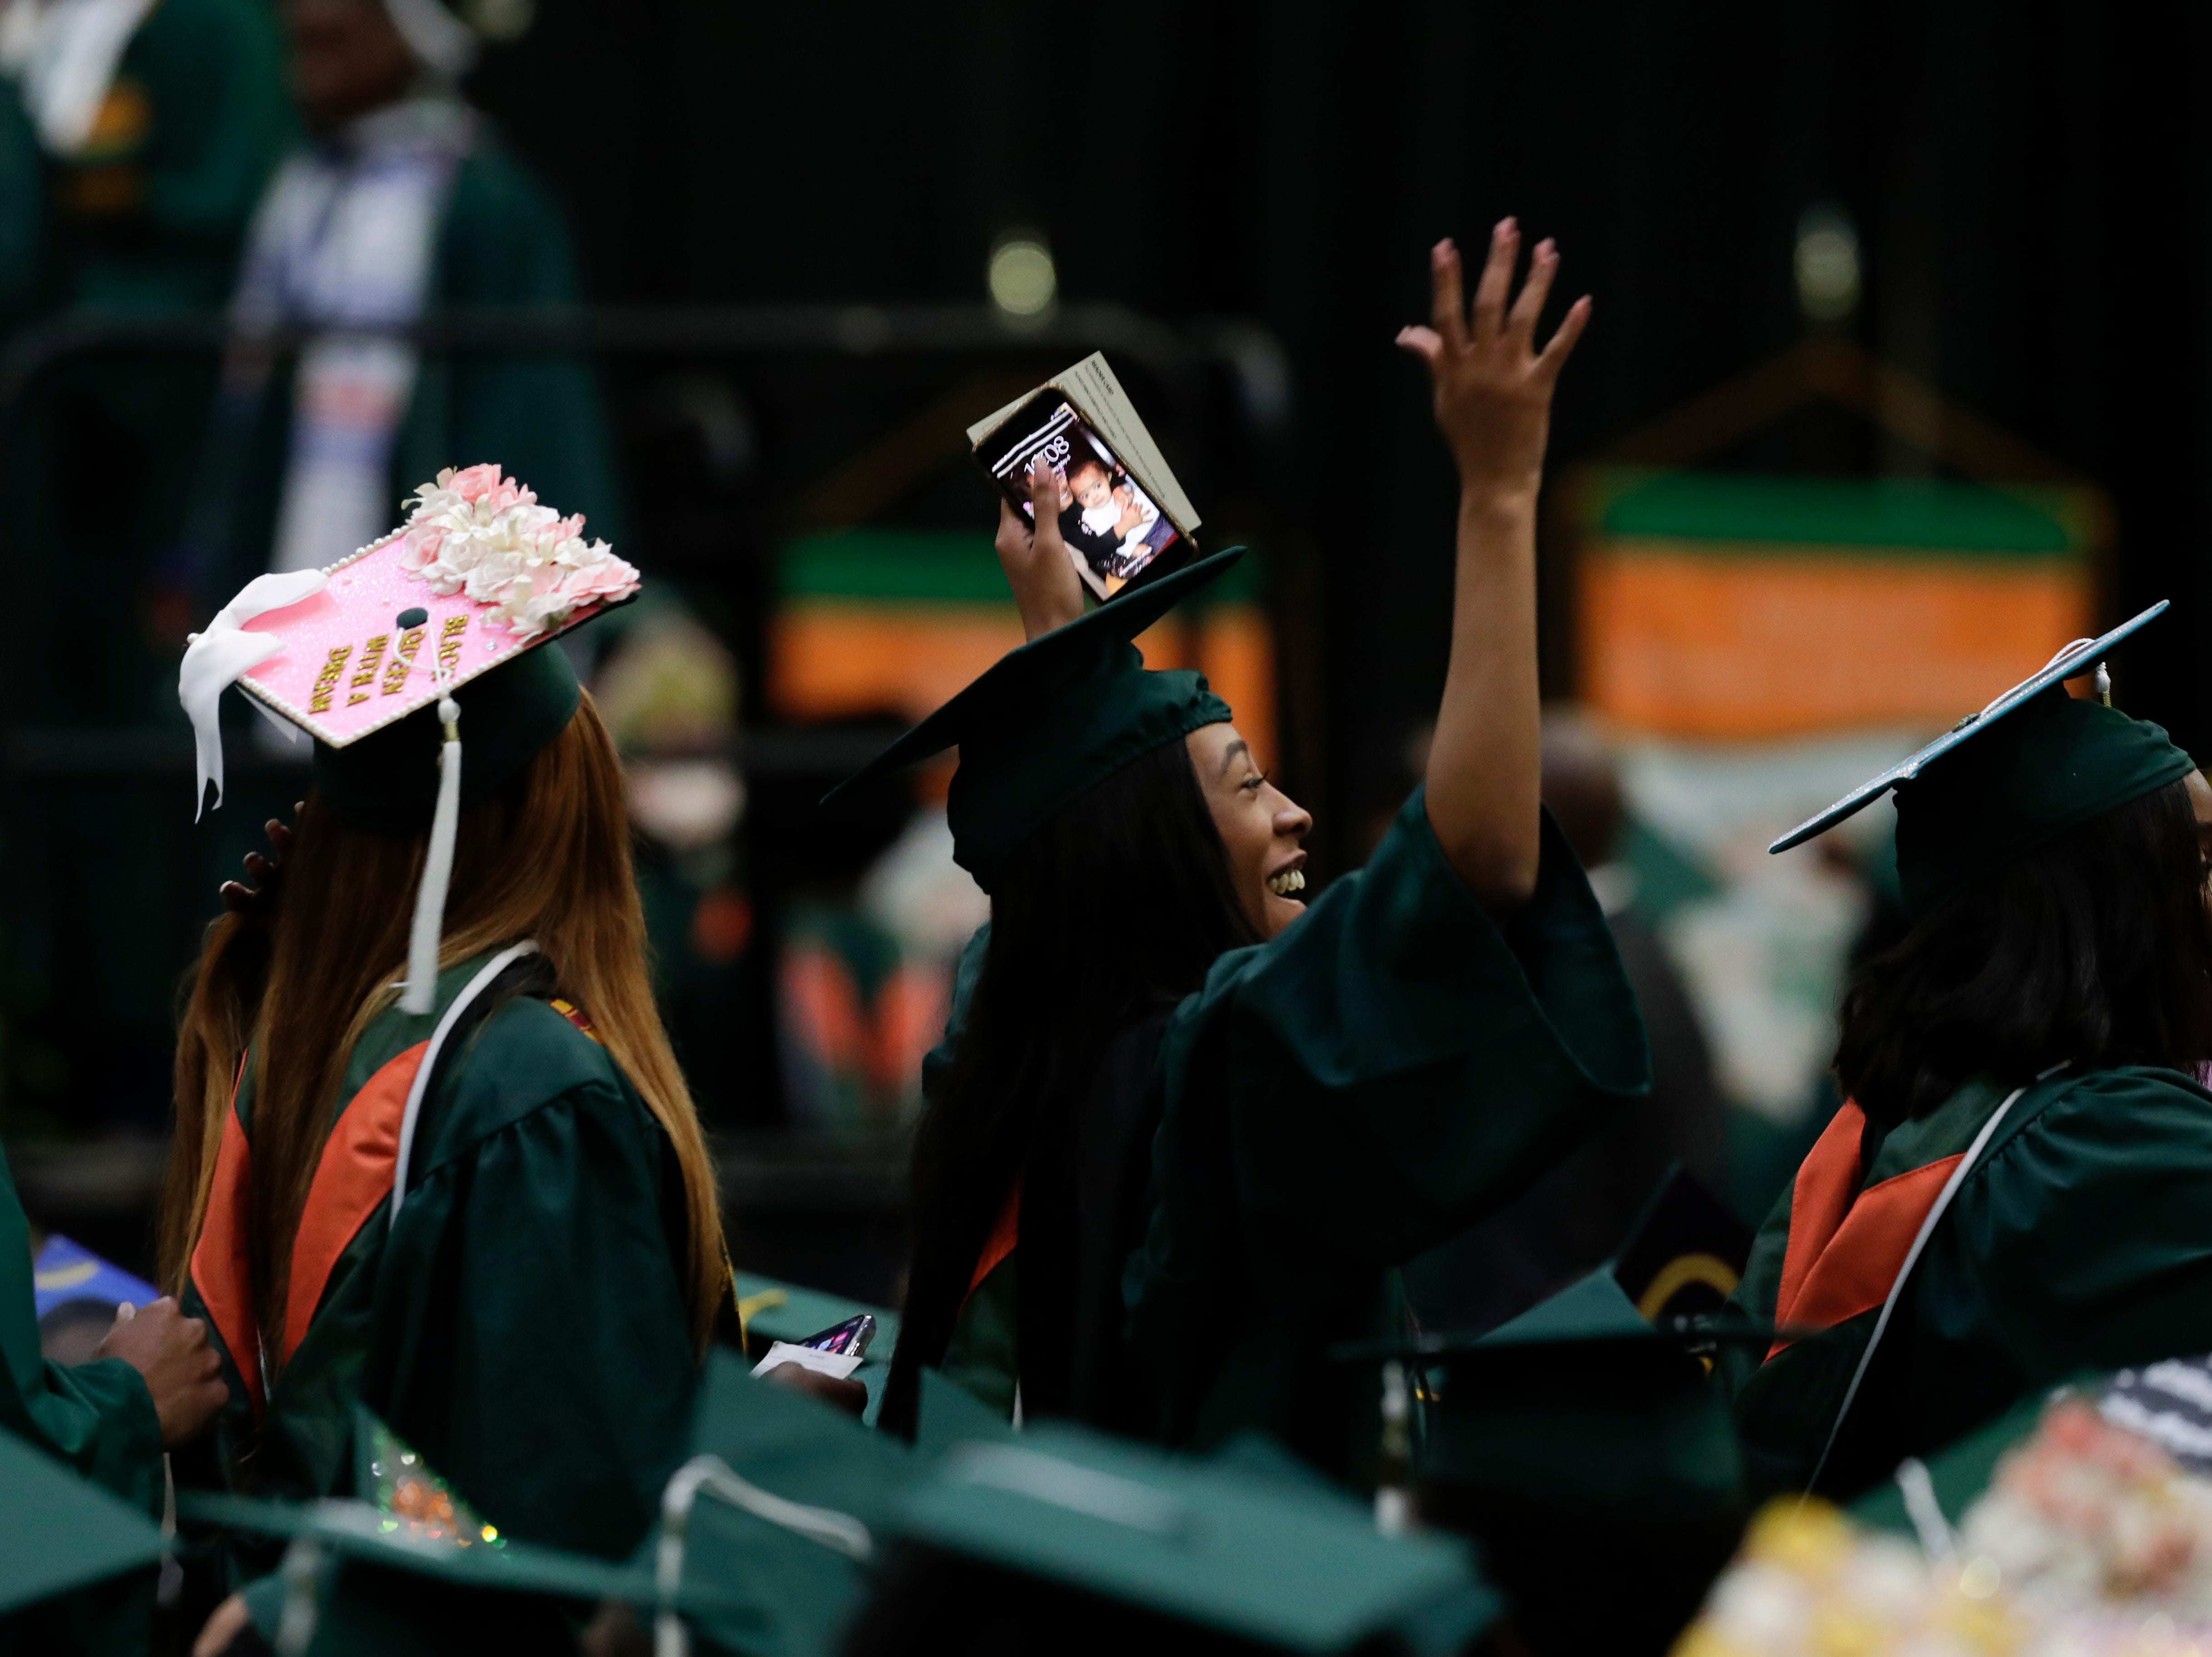 Florida A&M University celebrated spring commencement Saturday, May 4, 2019.